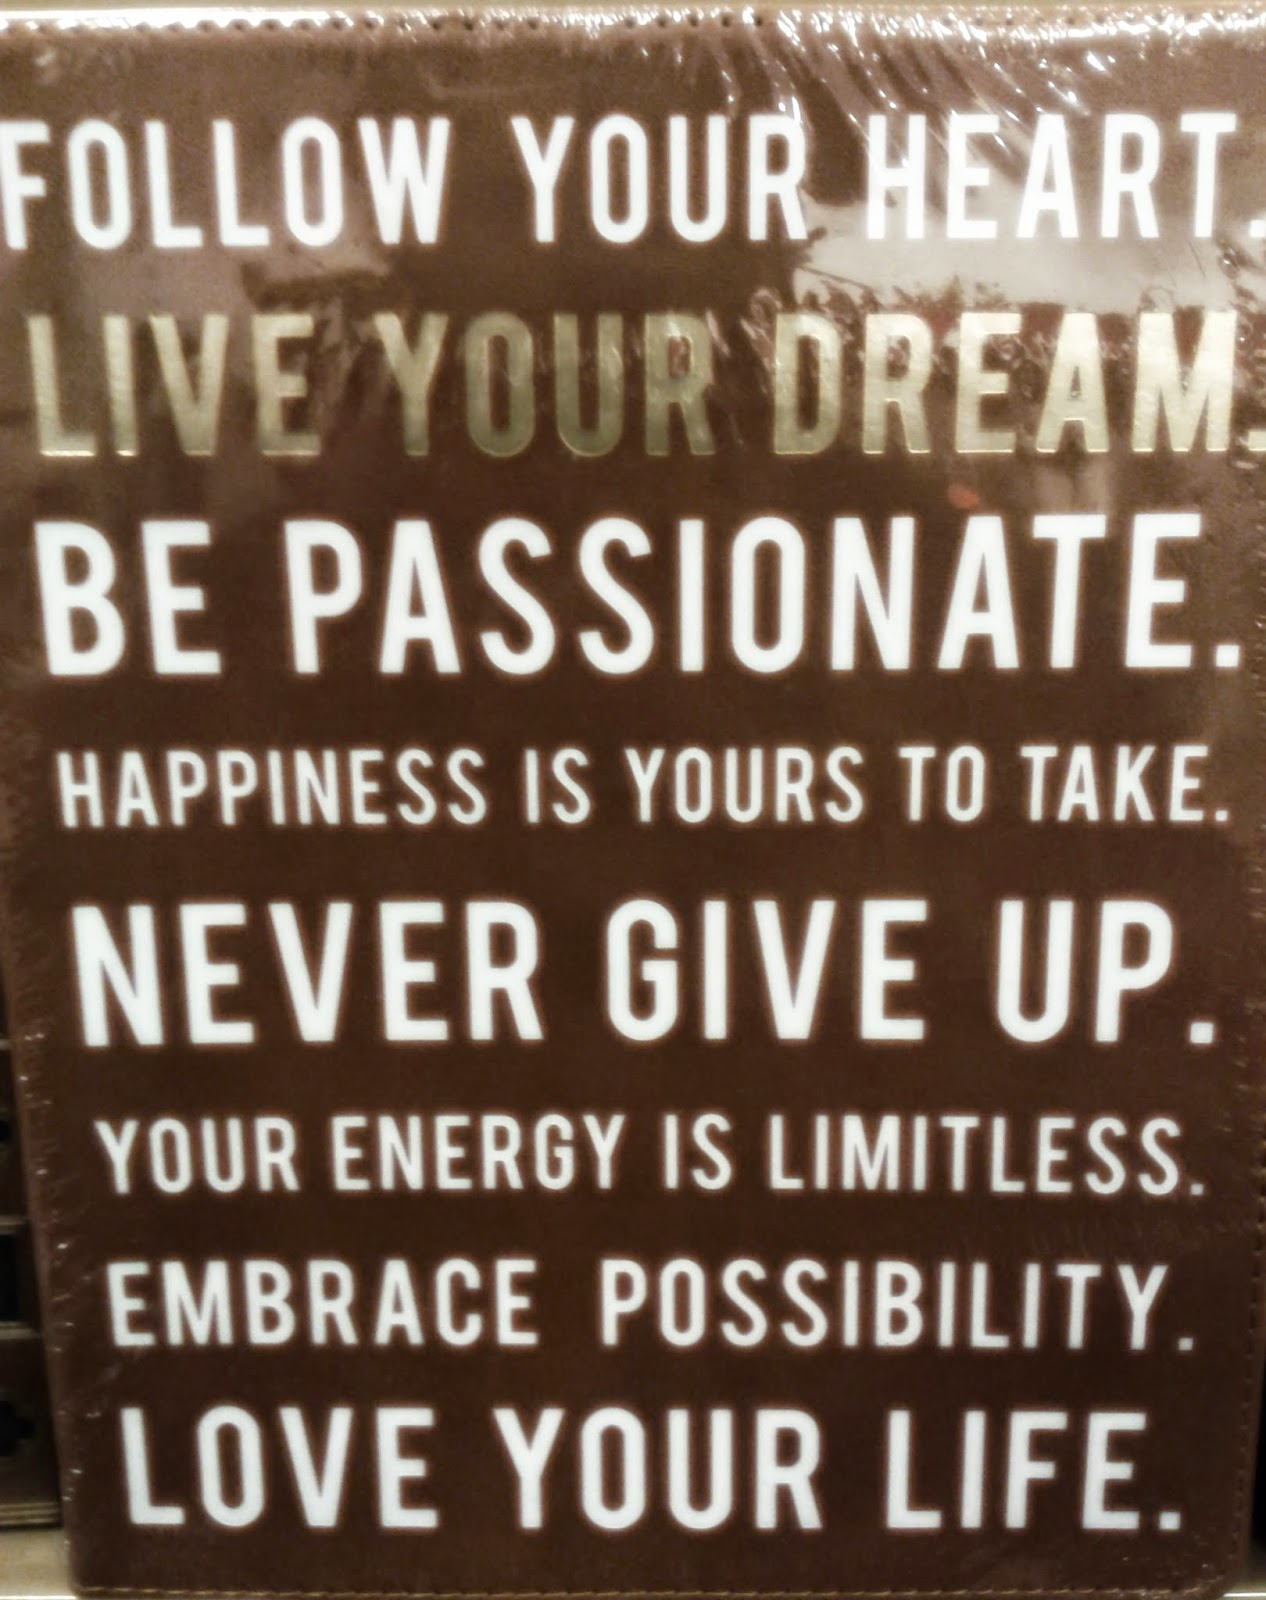 Follow your heart Live your dream Be passionate Happiness if yours to take Never give up Your energy is limitless Embrace possibility Love your life